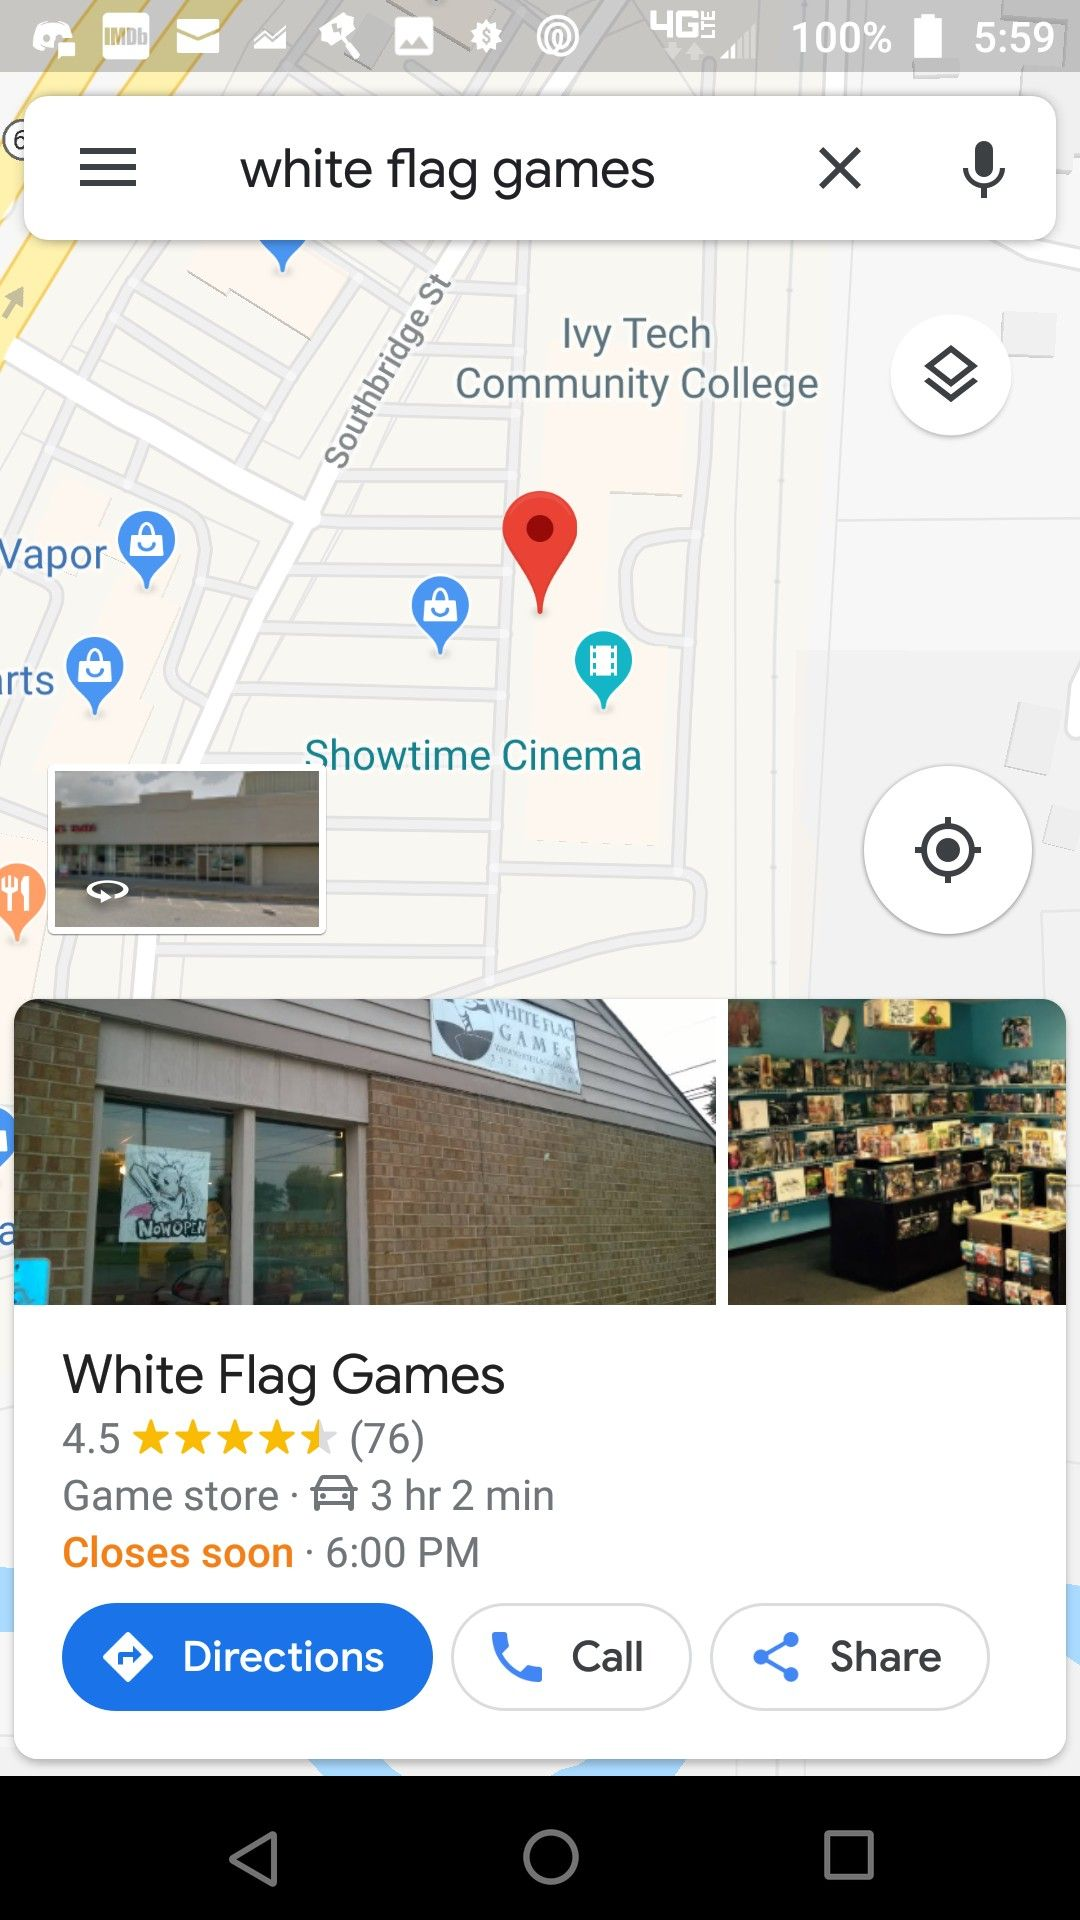 Pin by Tim Strycker on Gaming Stores Game store, Flag